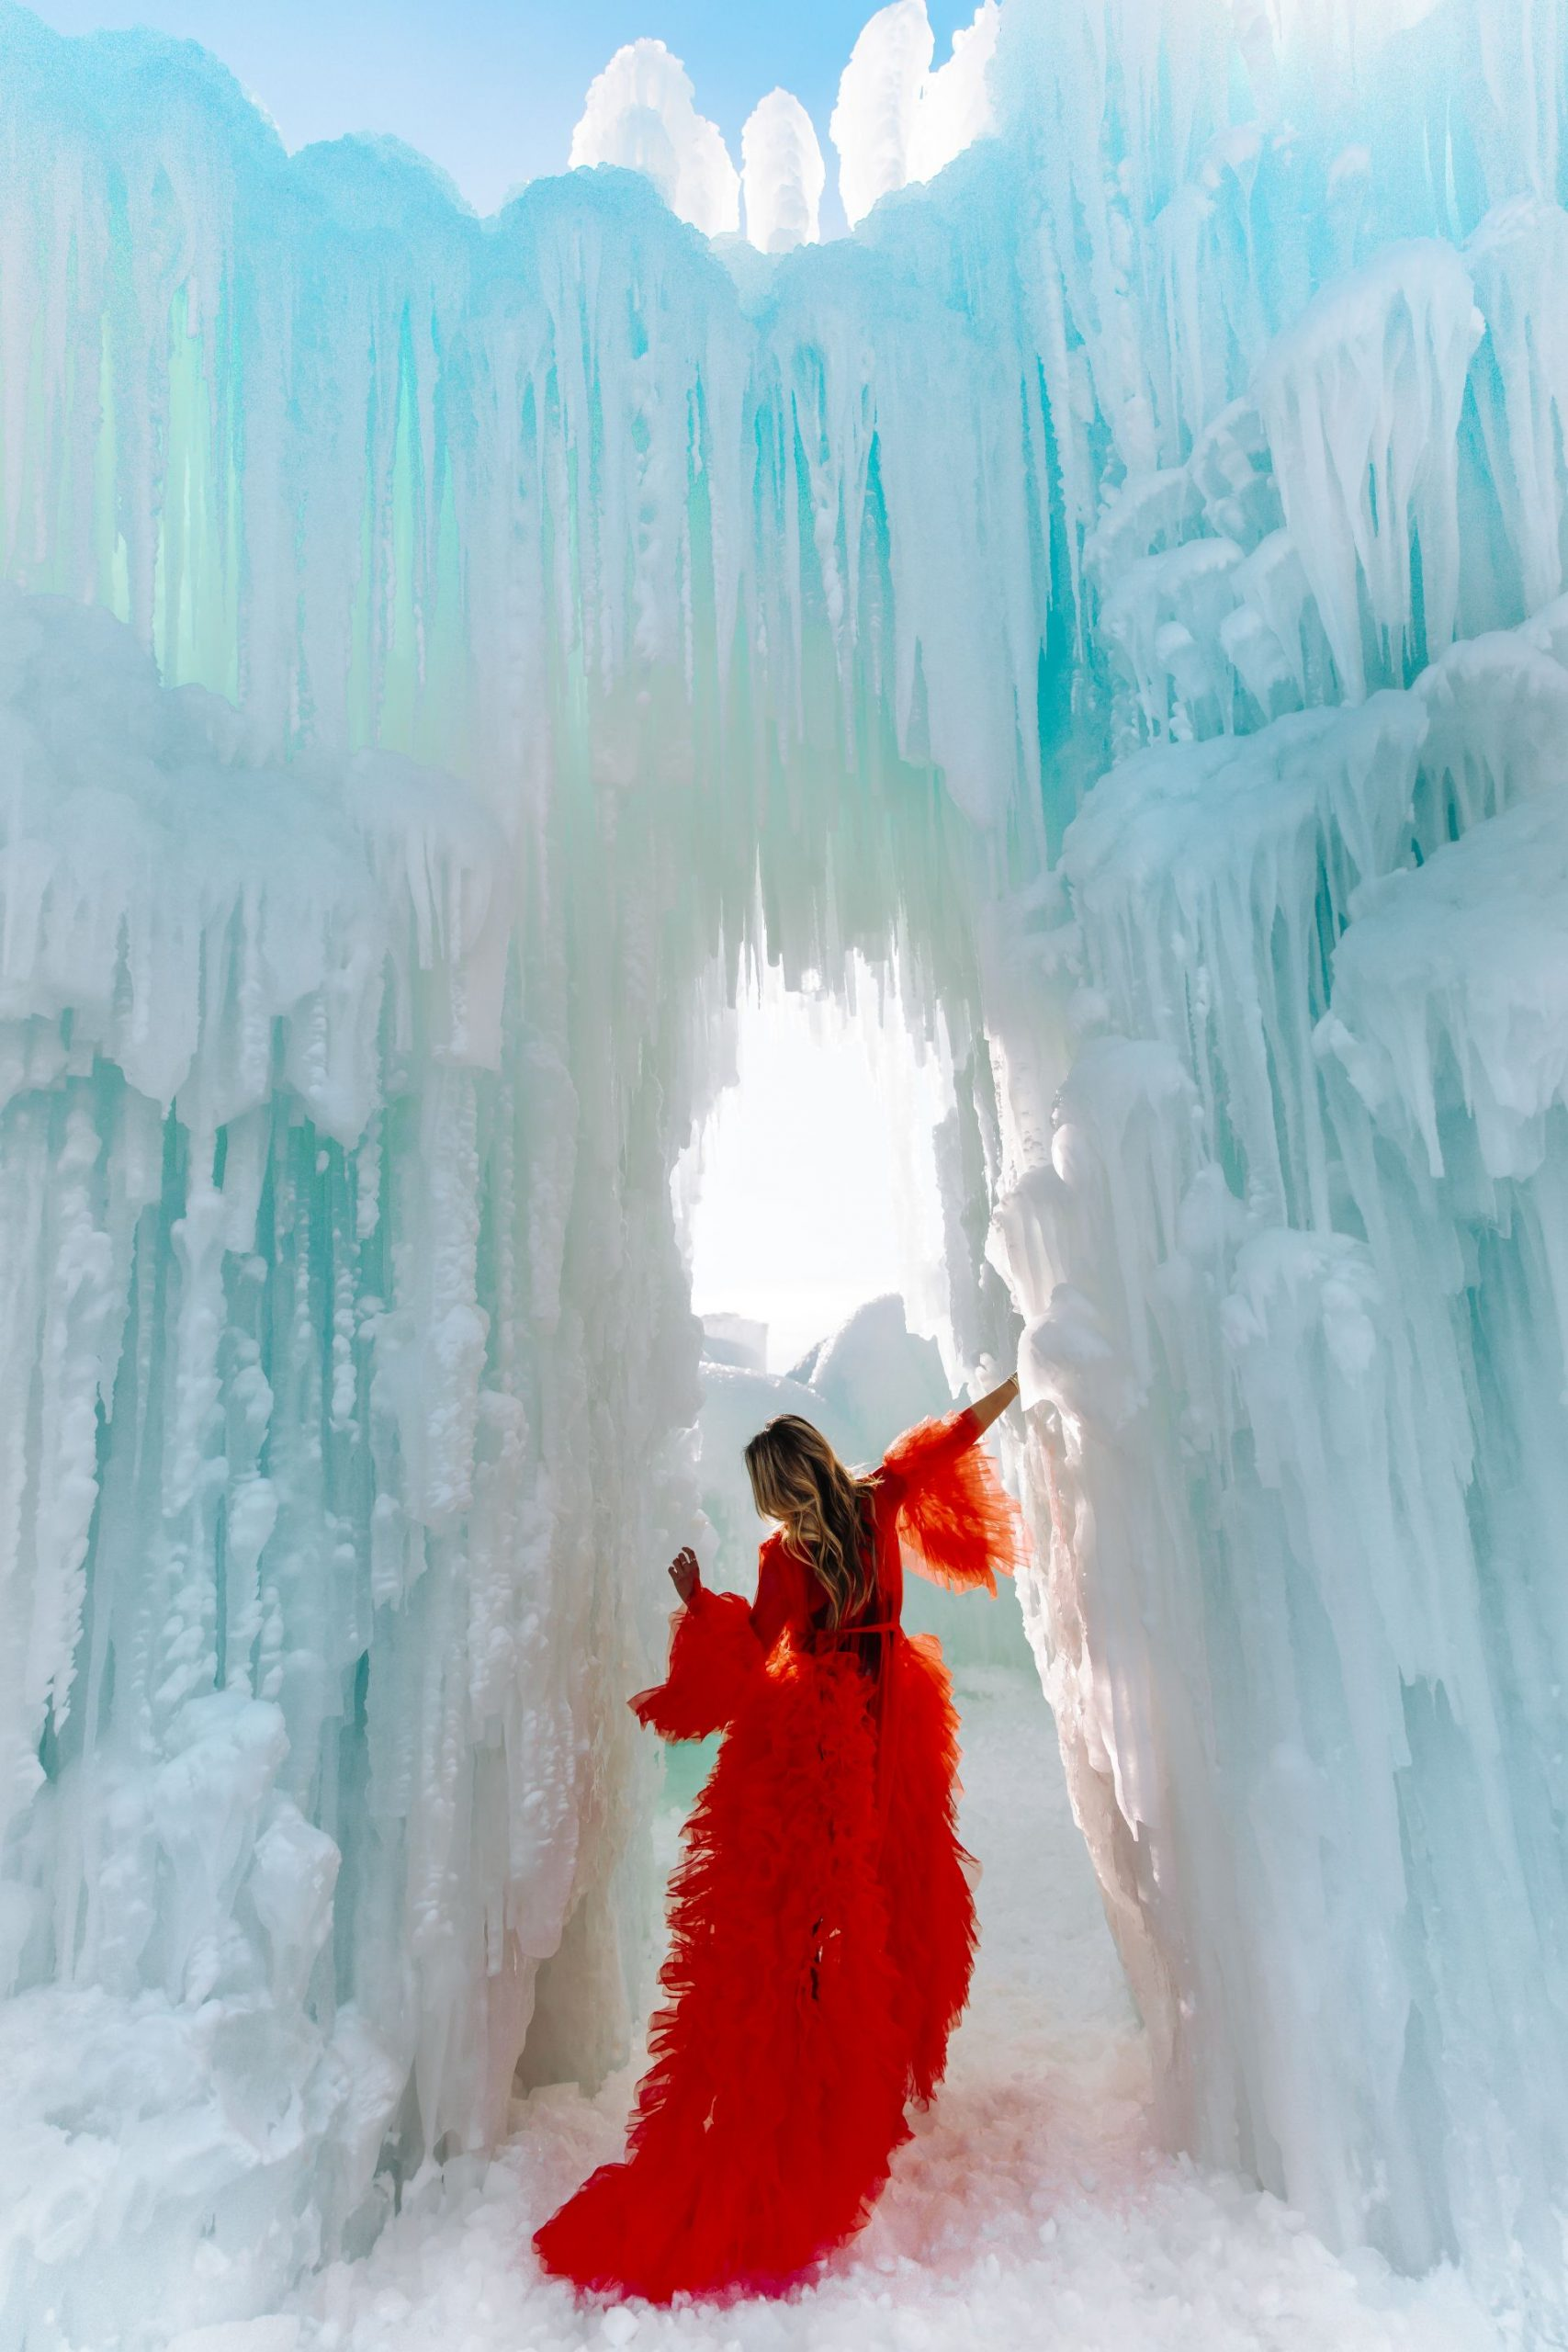 Ice Castles, Lake Geneva, Wisconsin Ice Castles, Jennifer Worman, Red Tulle Robe, Ice Castles Photo Inspiration, What to do in Chicago Winter, Romantic Ideas for Dates, Romantic stories, Dating Advice